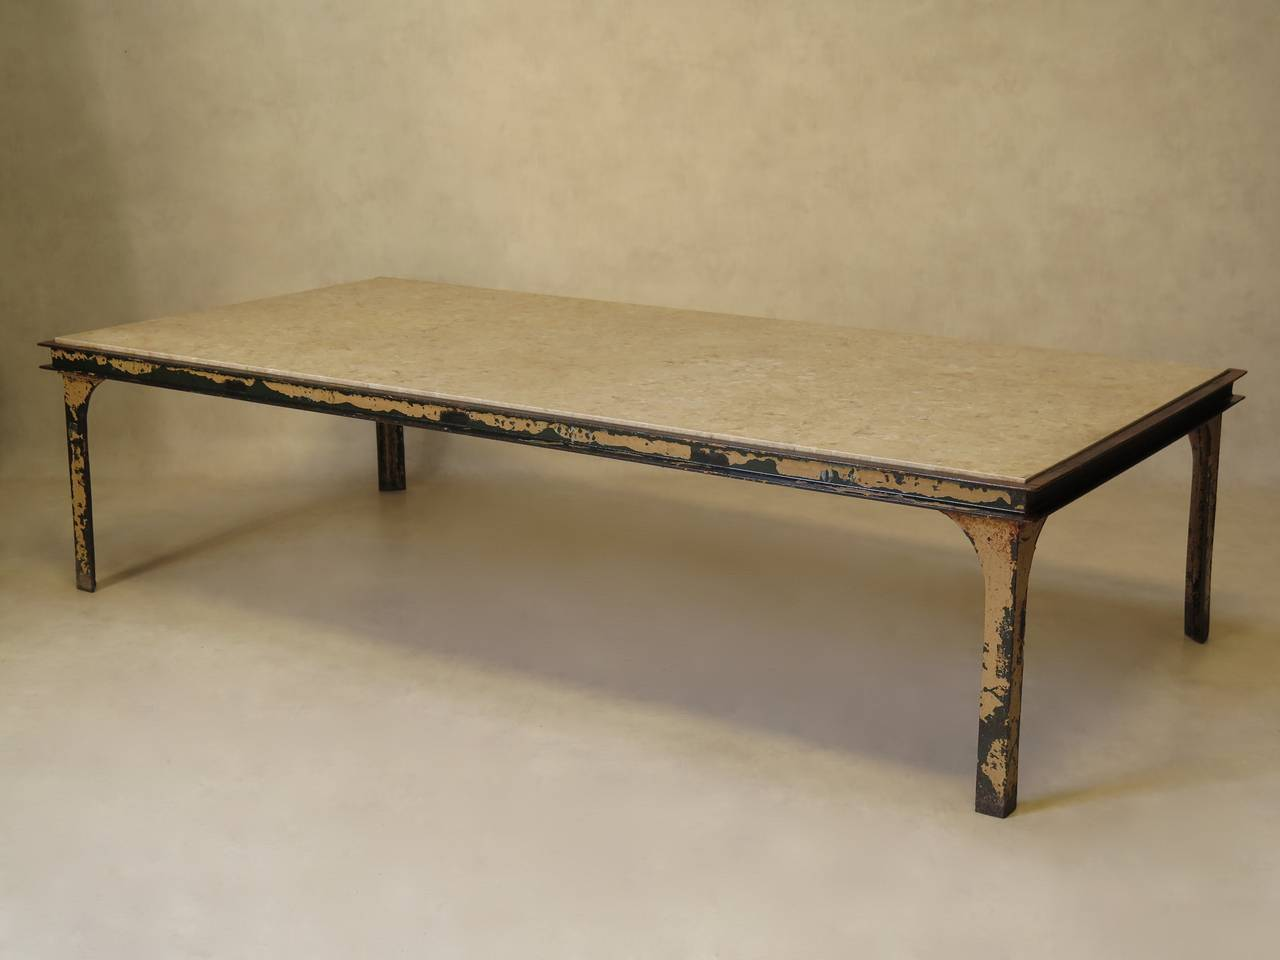 Great Large Iron And Stone Coffee Table France S For Sale At Stdibs With Stone  Coffee Table.